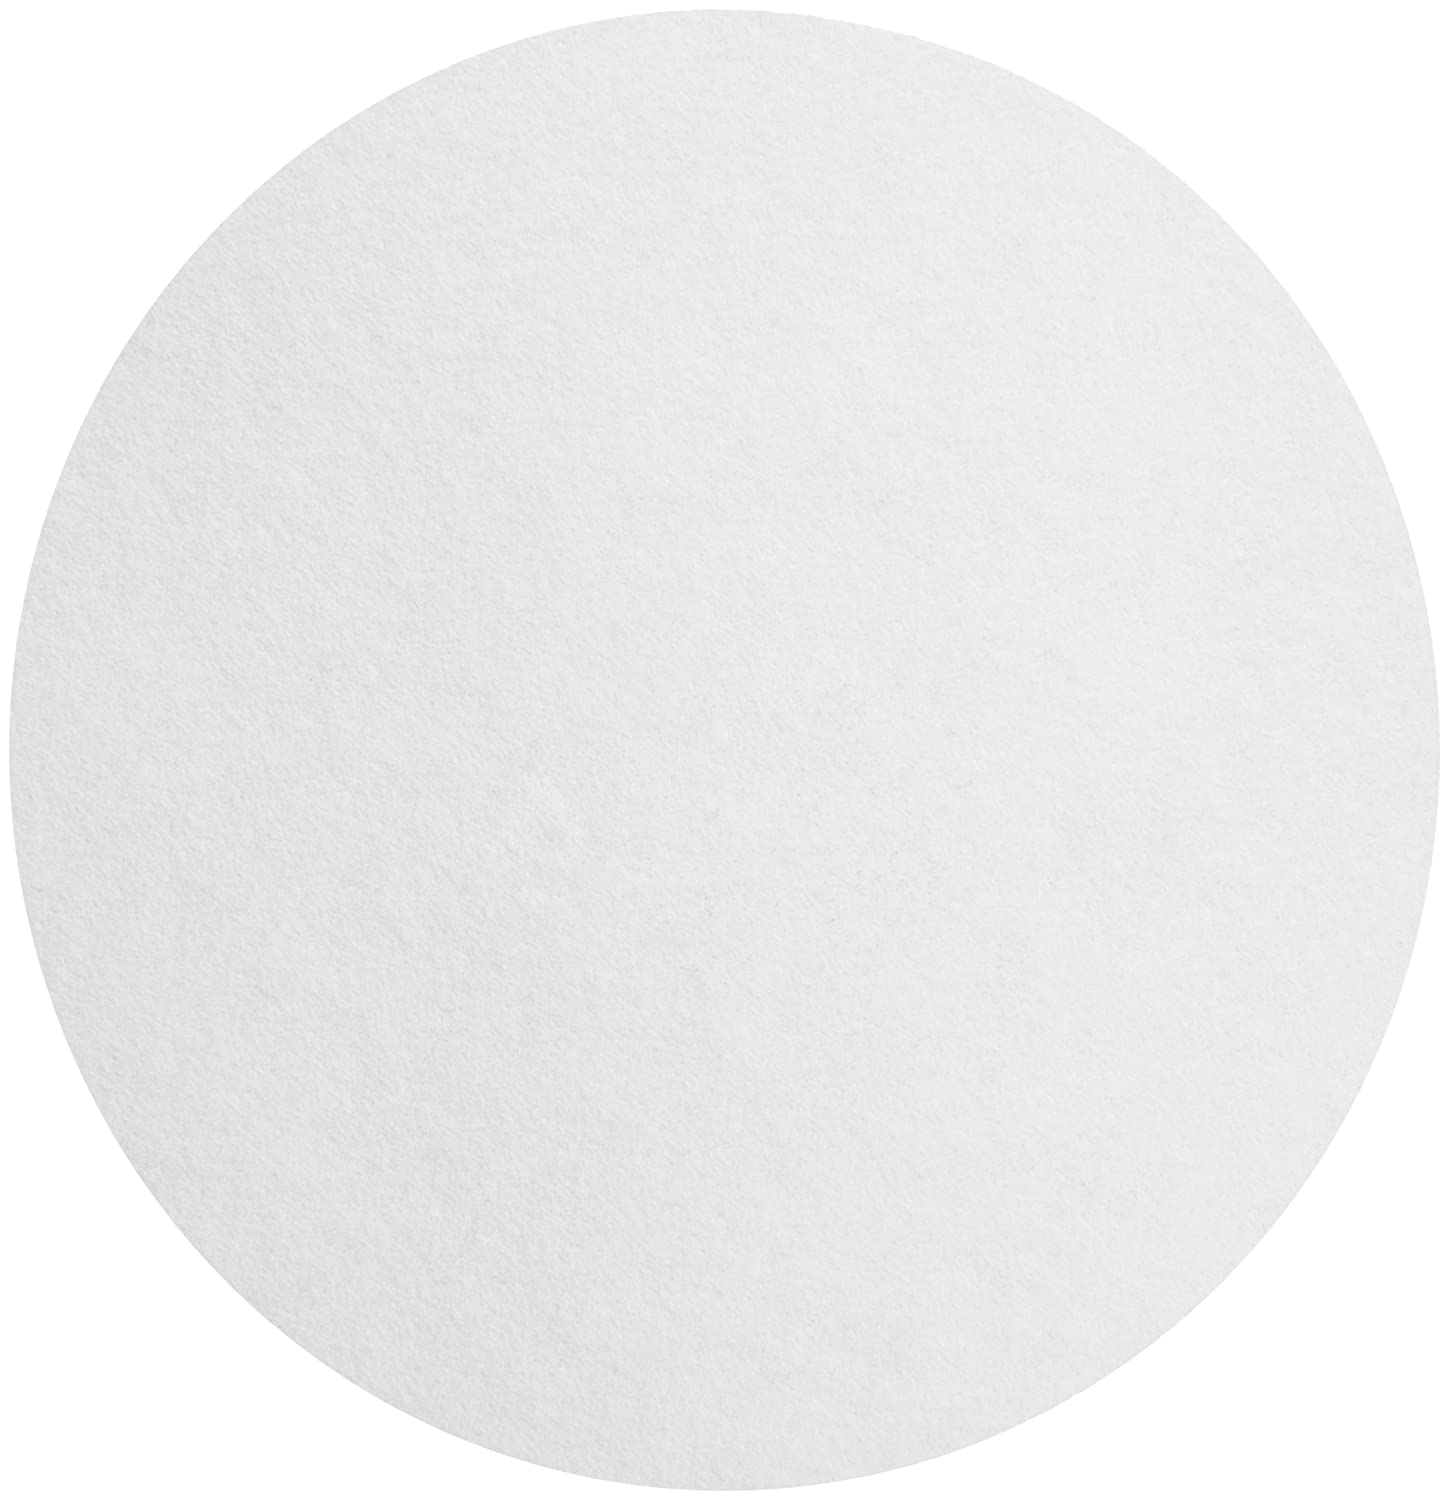 Whatman 1541070 Grade 541 Quantitative Filter Paper, Hardened Ash less, circle, 70 mm (Pack of 100) GE Healthcare F1256-4